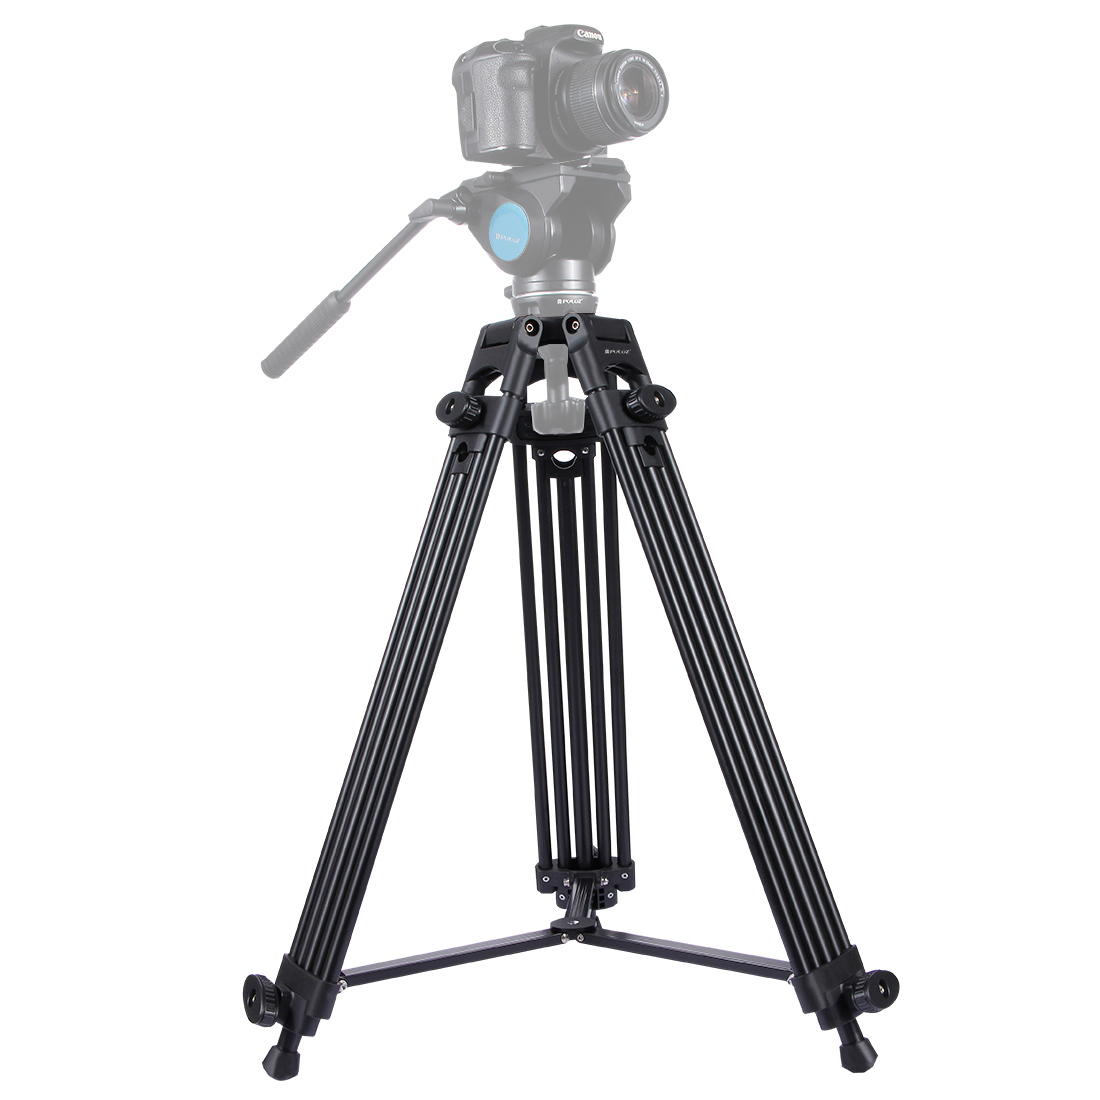 PULUZ Professional Heavy Duty Tripod Video Camera Camcorder Tripod Monopod Aluminum Alloy Tripod for Canon Sony DSLR SLR Camera tripod handle camcorder eng lens controller with rec zoom control for lenses from fuji or canon professional broadcast camera